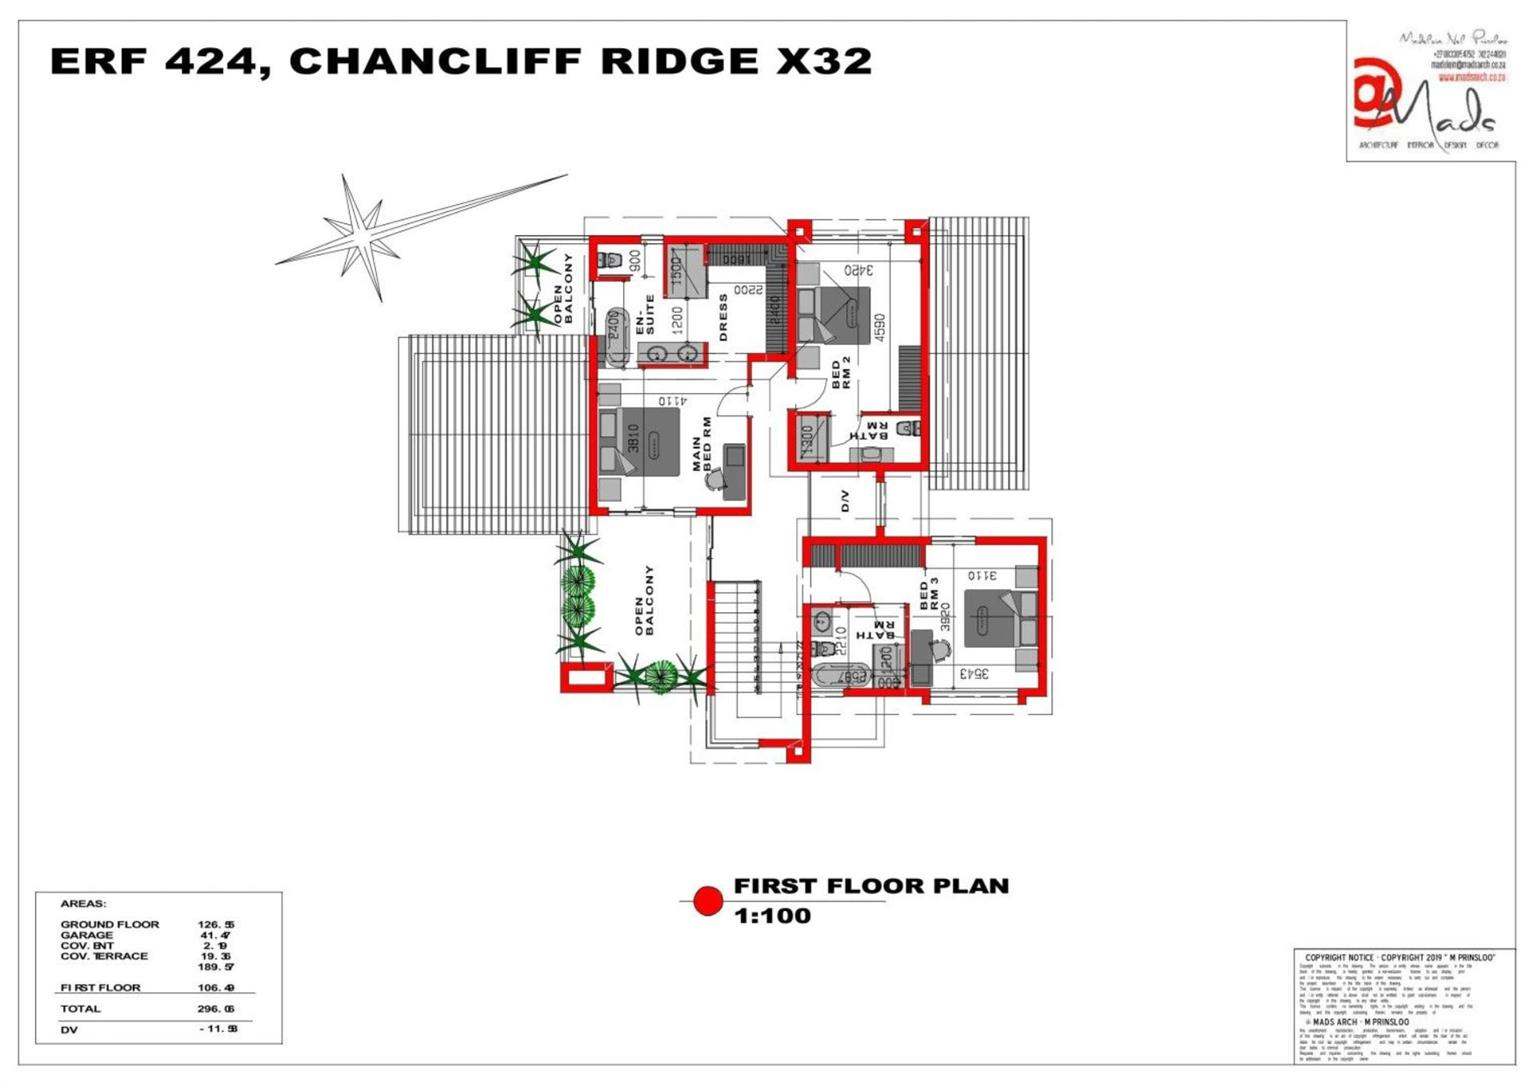 House For Sale in Chancliff Ridge